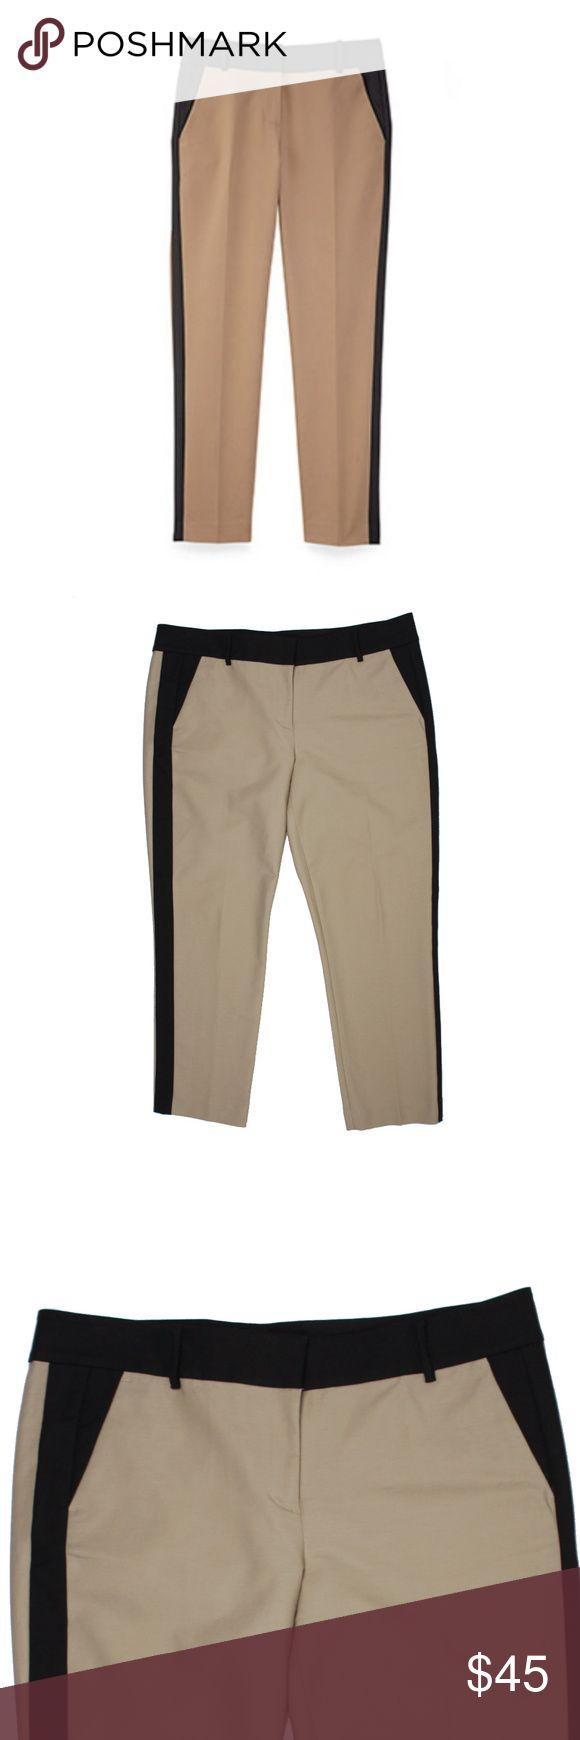 """New ANN TAYLOR Tan Tuxedo Stripe Cropped Pants Size -14  NWOT. These new tan and black tuxedo stripe ants form ANN TAYLOR feature a zip tab closure and cropped inseam. Cotton blend.  Measures:   Waist: 38""""  Rise: 10""""  Hips: 44""""  Inseam: 27"""" Ann Taylor Pants Ankle & Cropped"""